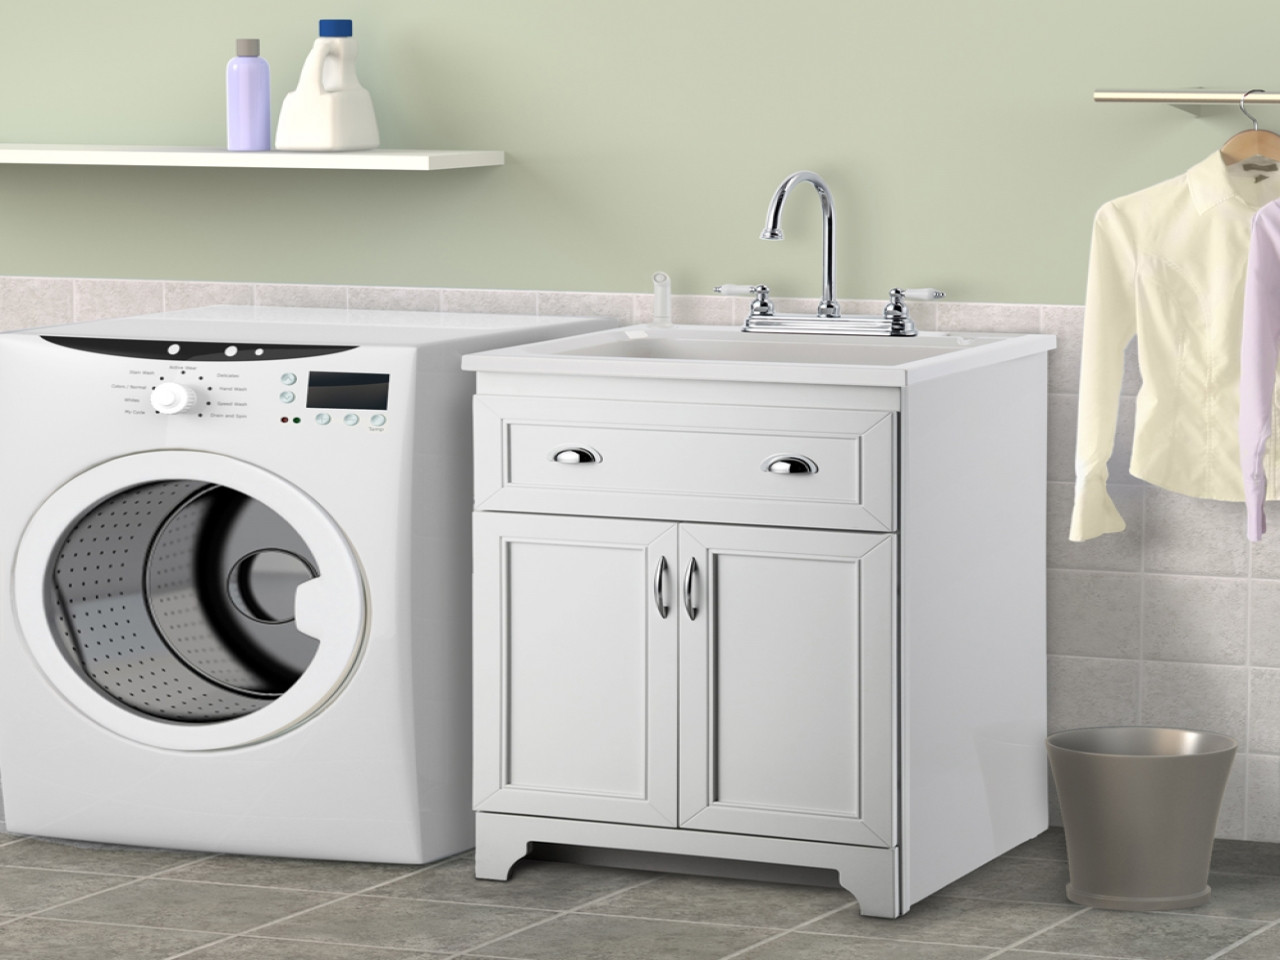 Best ideas about Laundry Room Cabinets Home Depot . Save or Pin Laundry room cabinet with sink home depot utility sink Now.